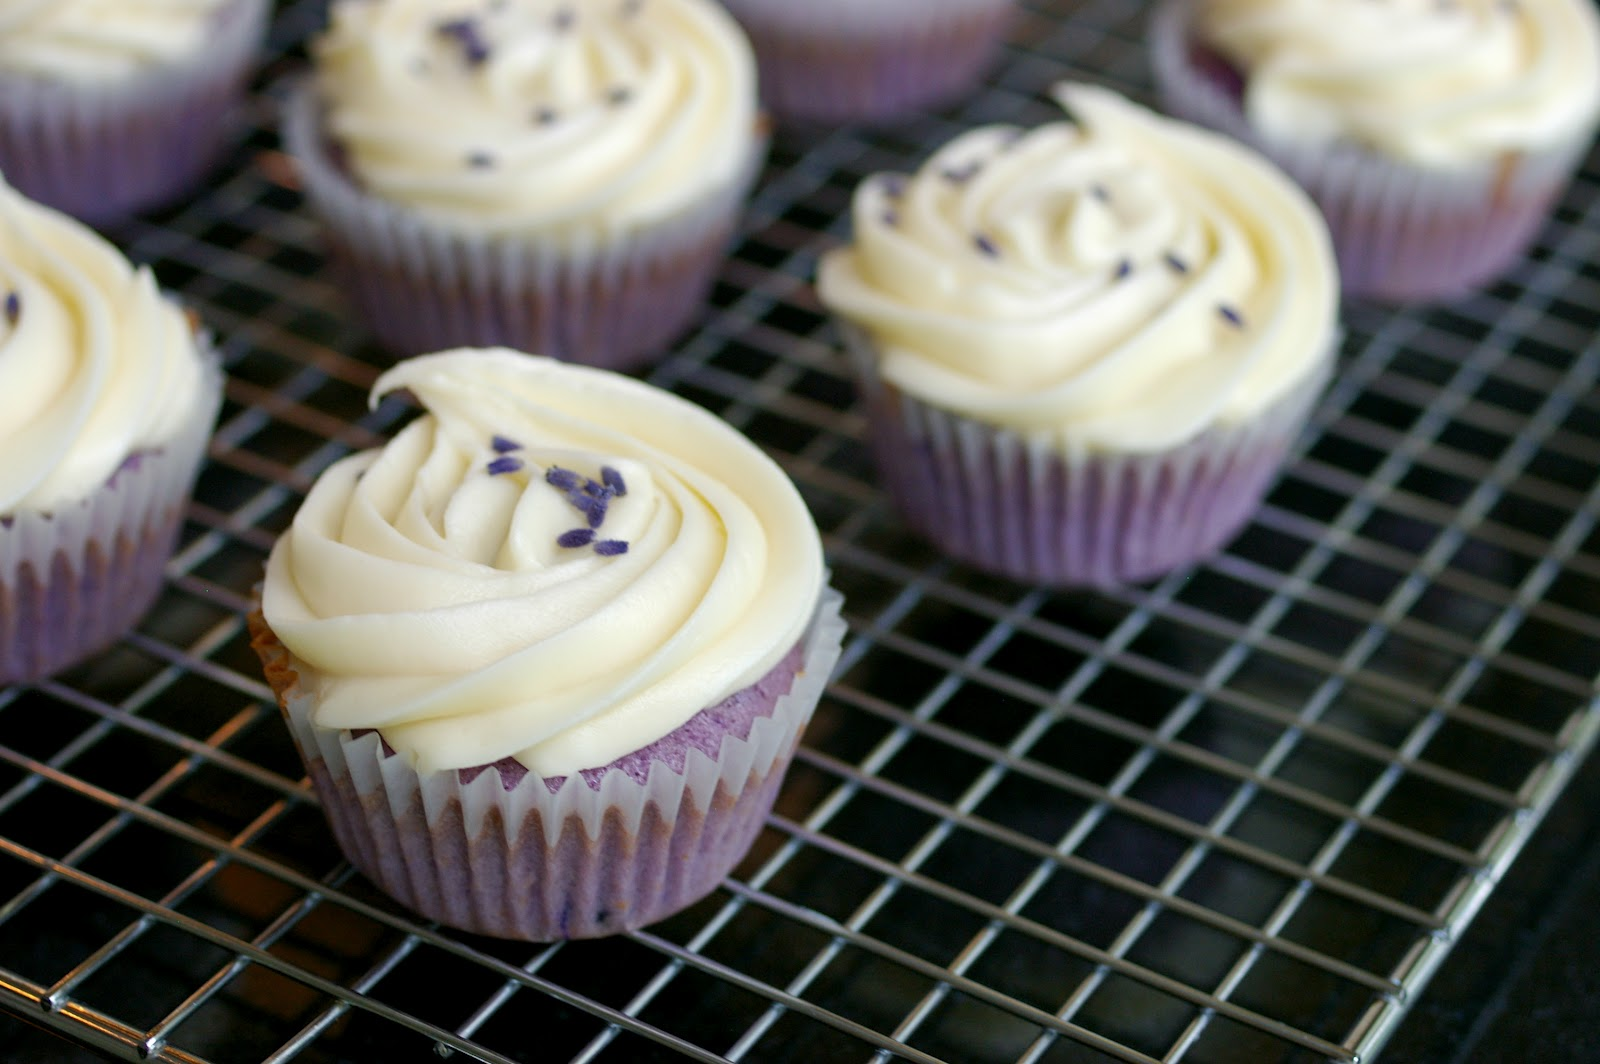 The Cupcake Suite: Lavender Honey Cupcakes